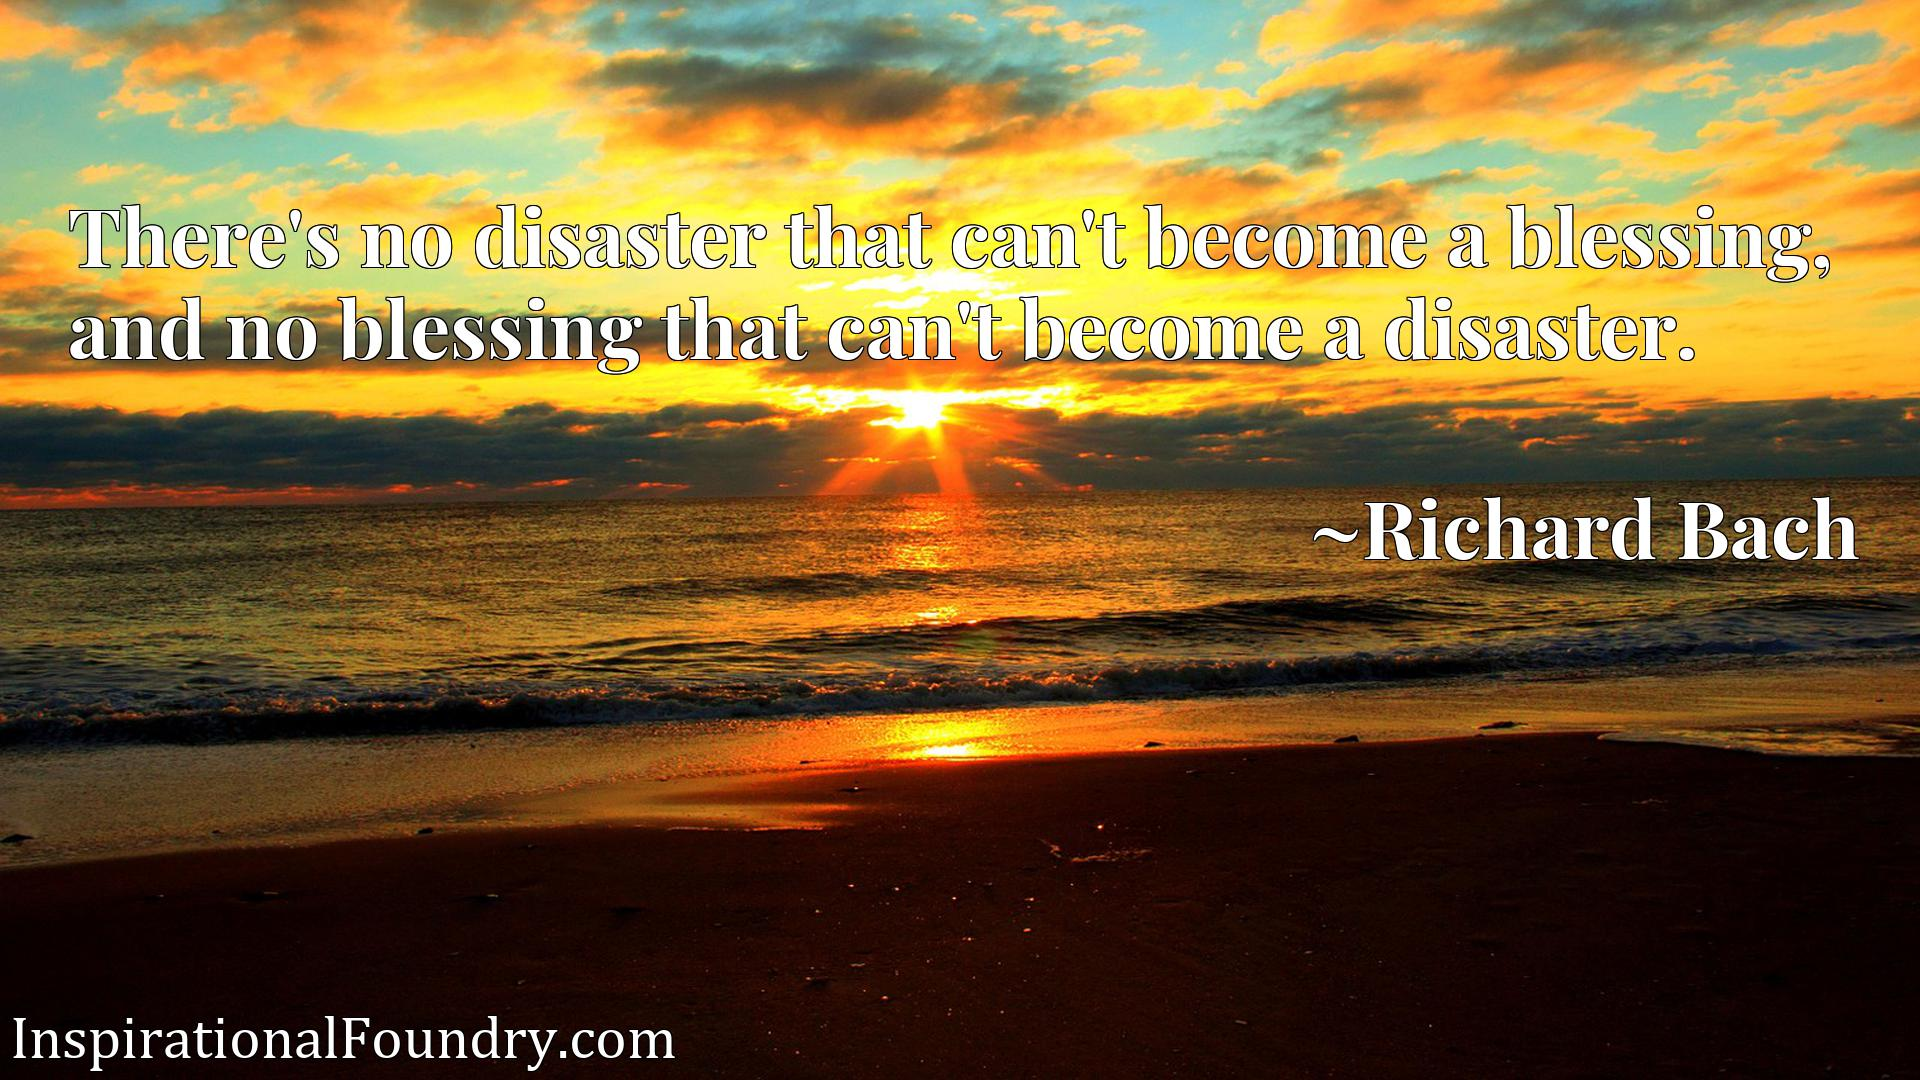 There's no disaster that can't become a blessing, and no blessing that can't become a disaster.